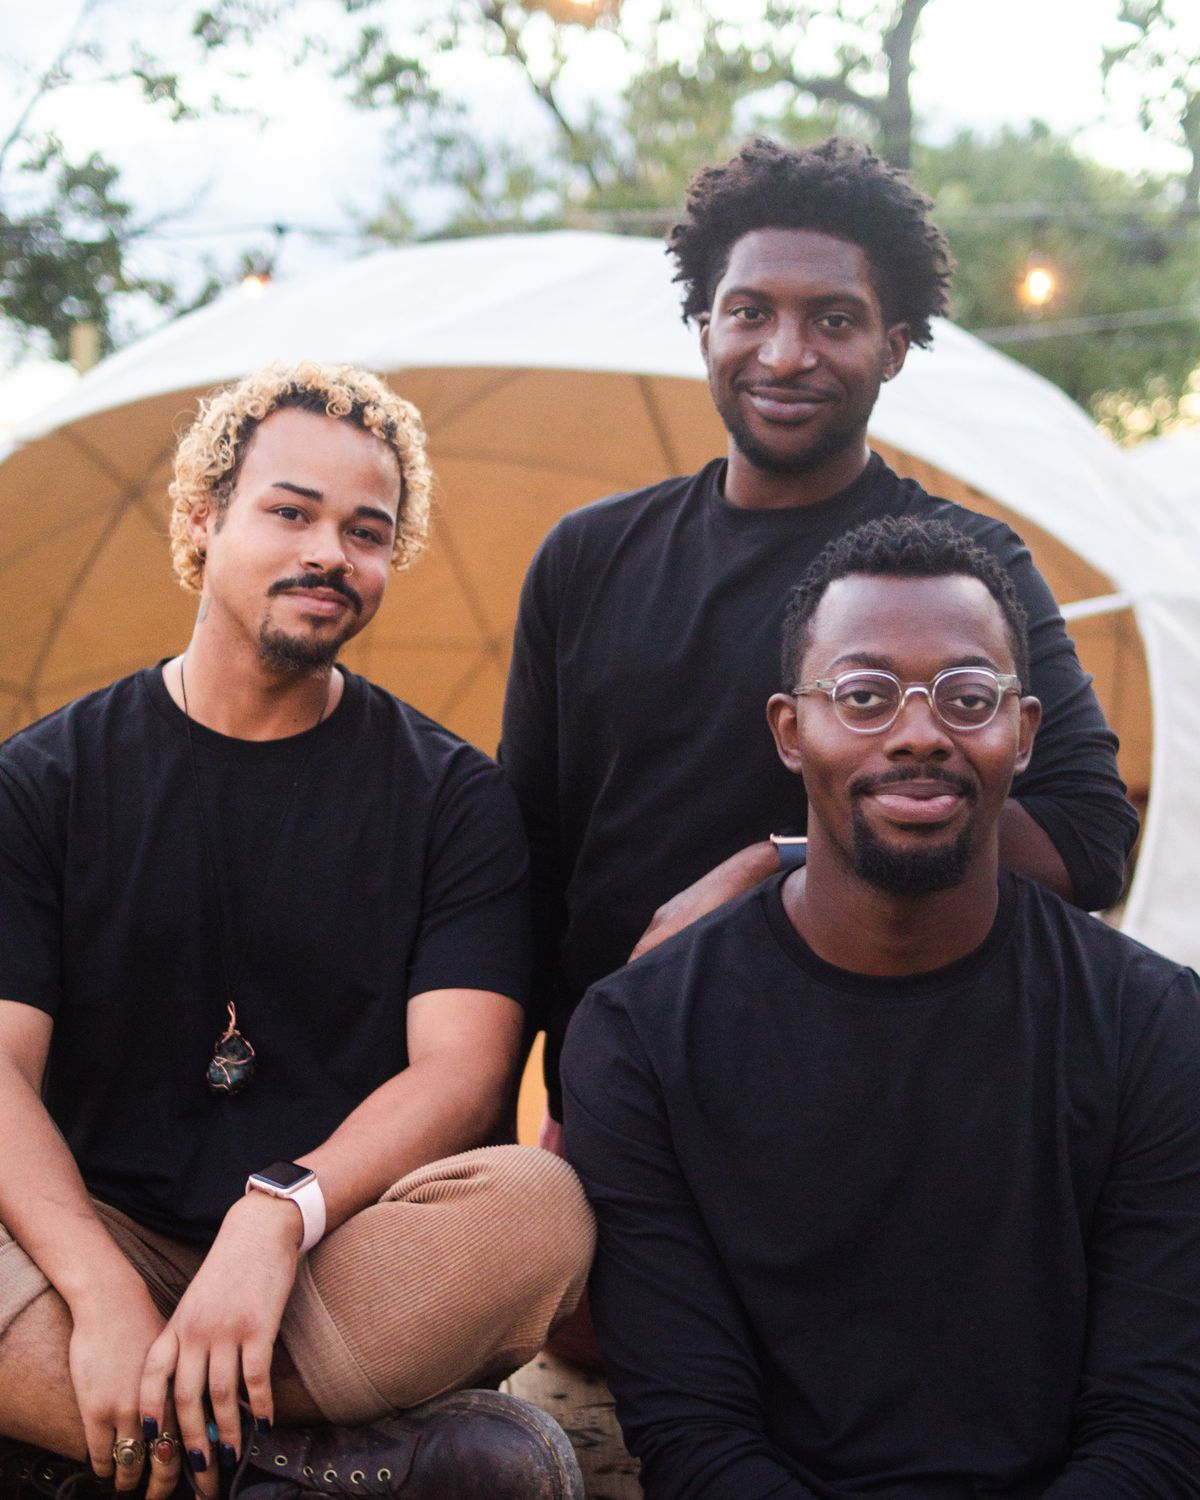 East Eats founders Kwaku Osei-Bonsu, Lloyd Talley, and Nigel Fyvie outside the outdoor domes at their restaurant